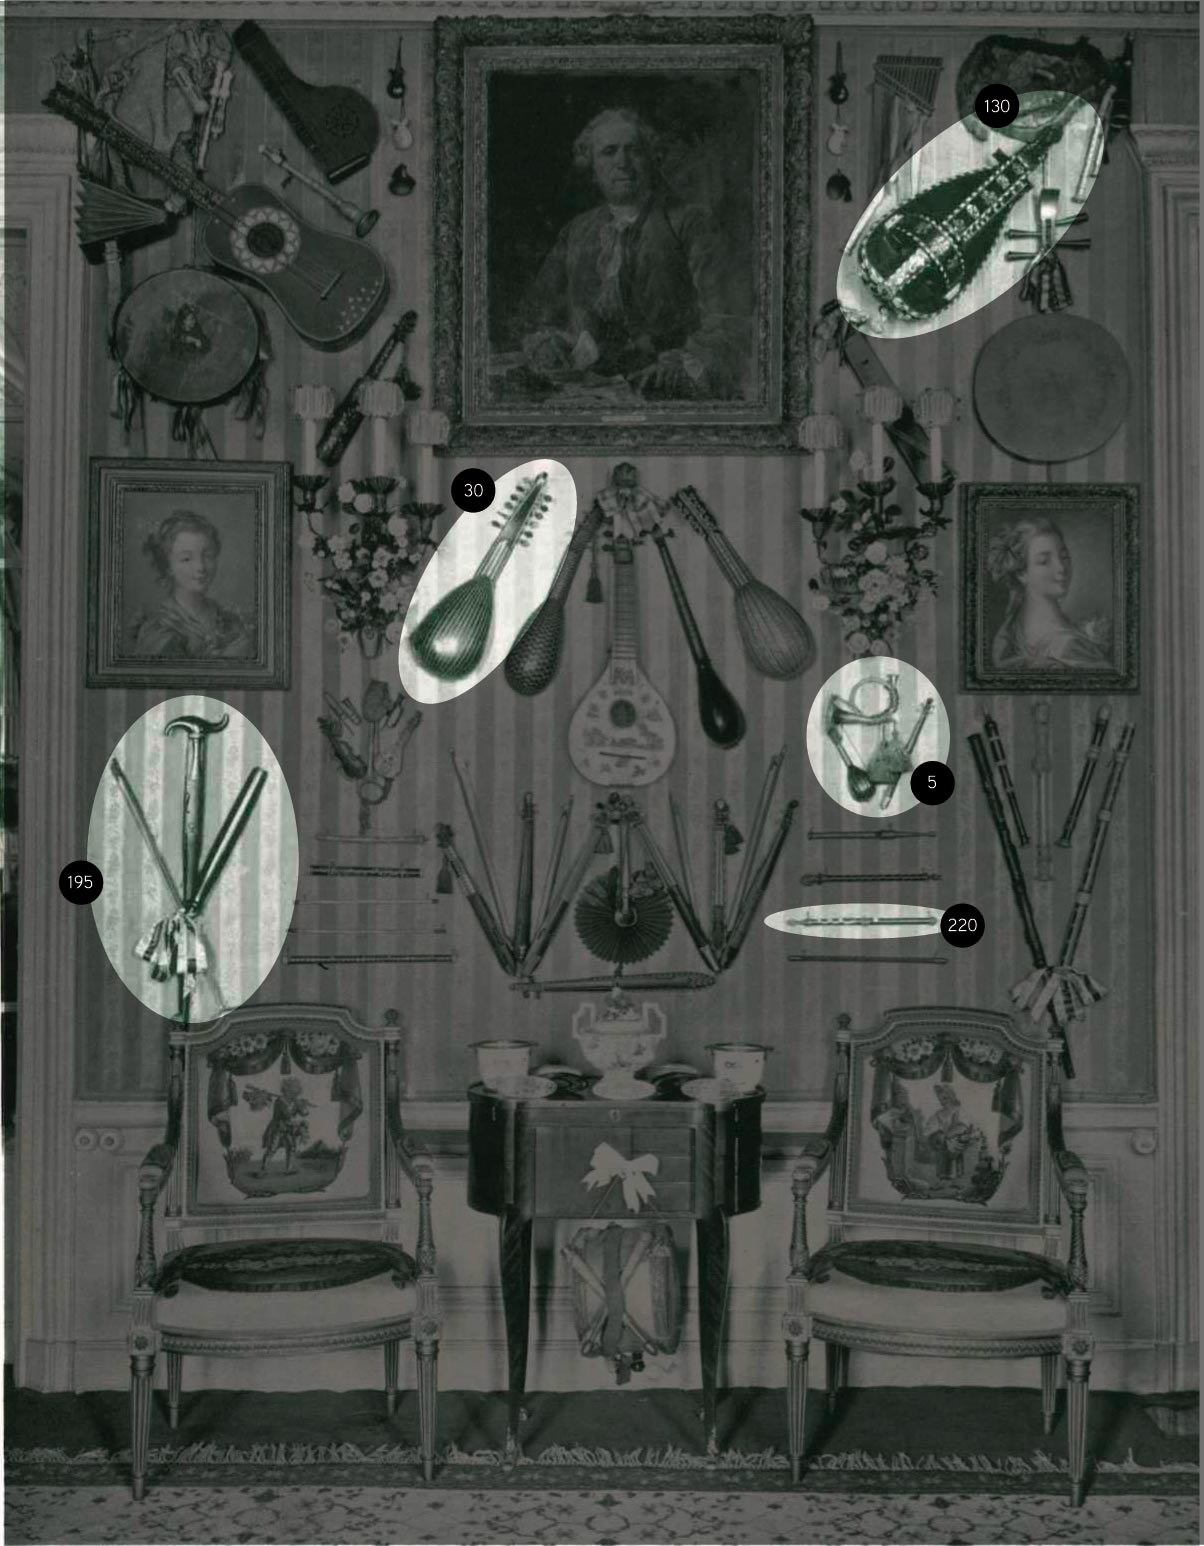 06-collection-jubinal-planches-instruments-1